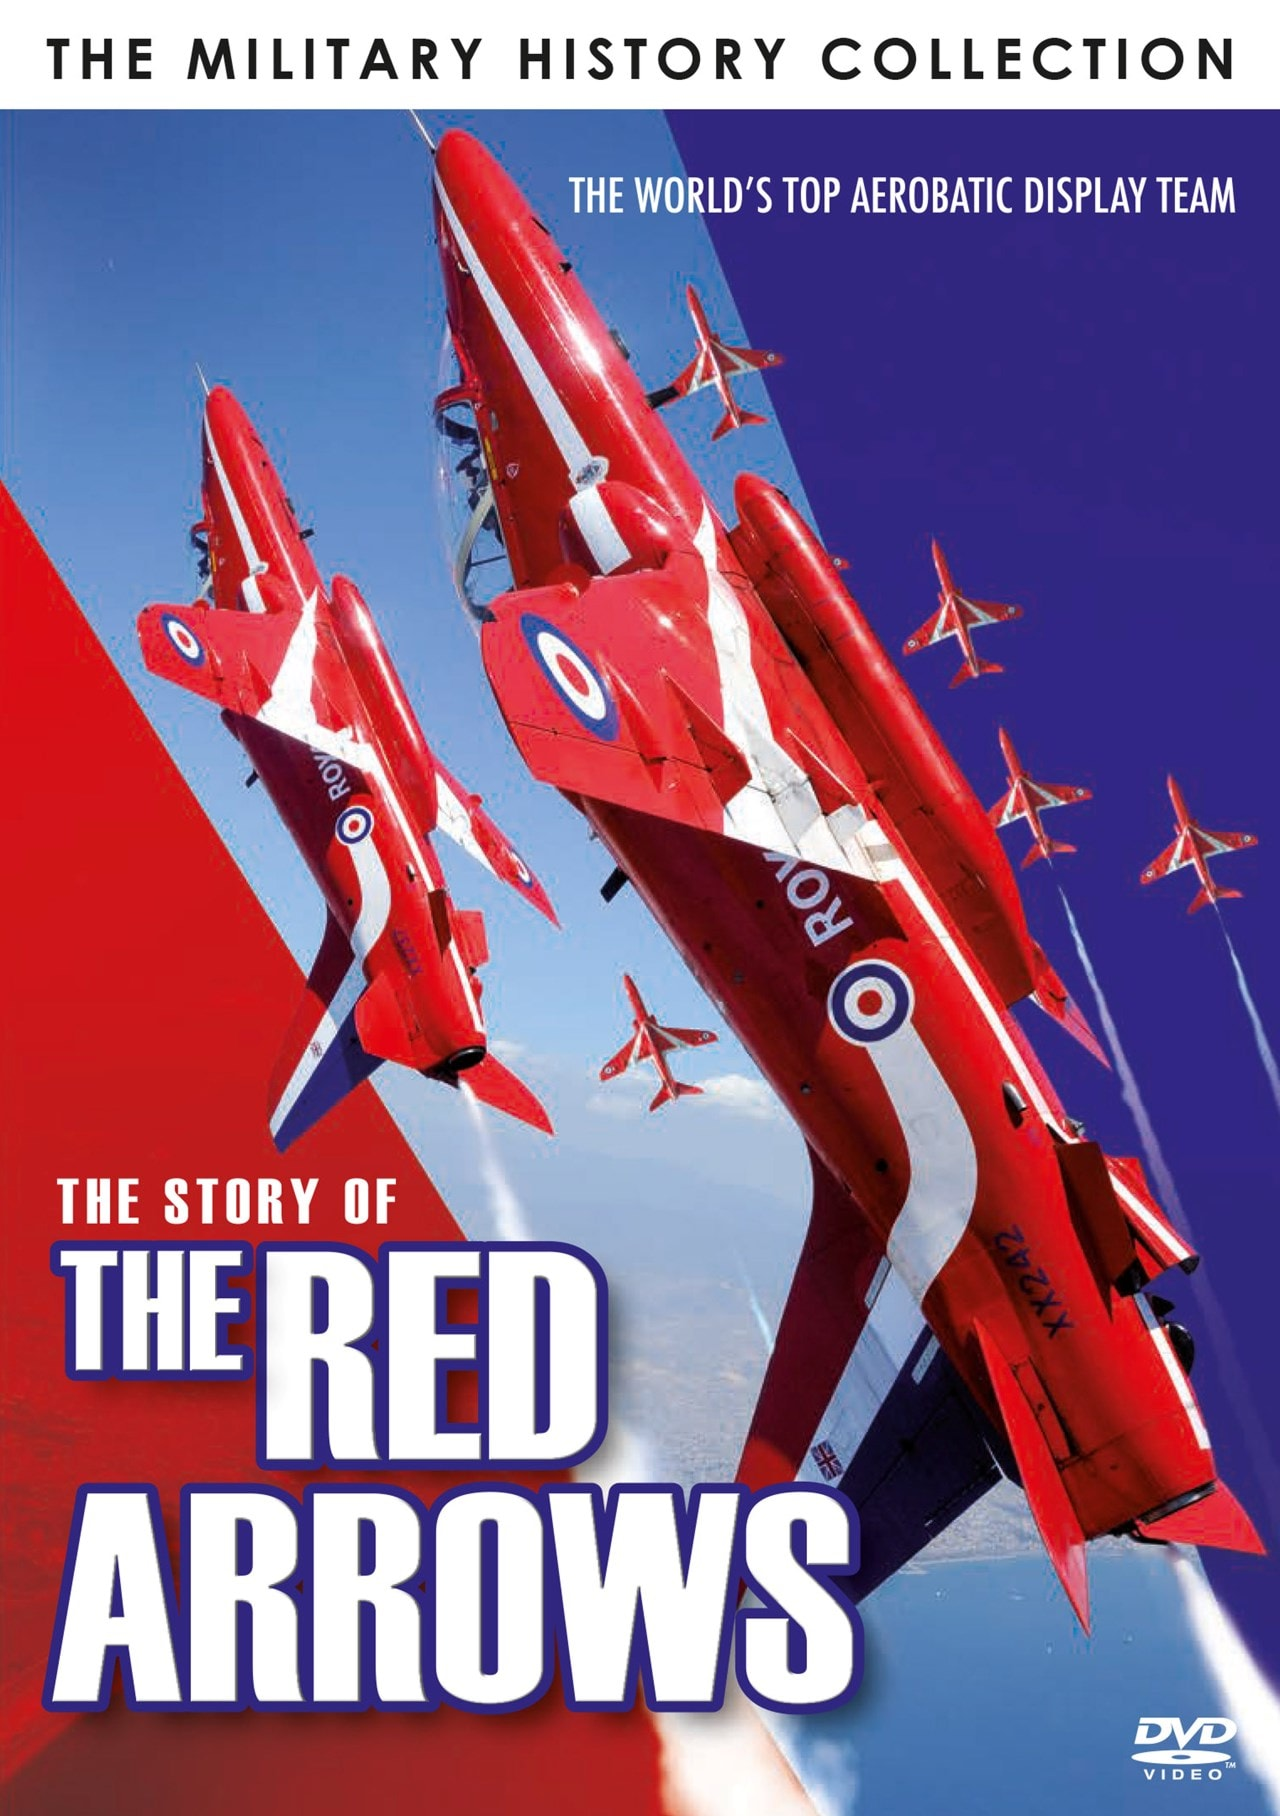 The Military History Collection: The Story of the Red Arrows - 1